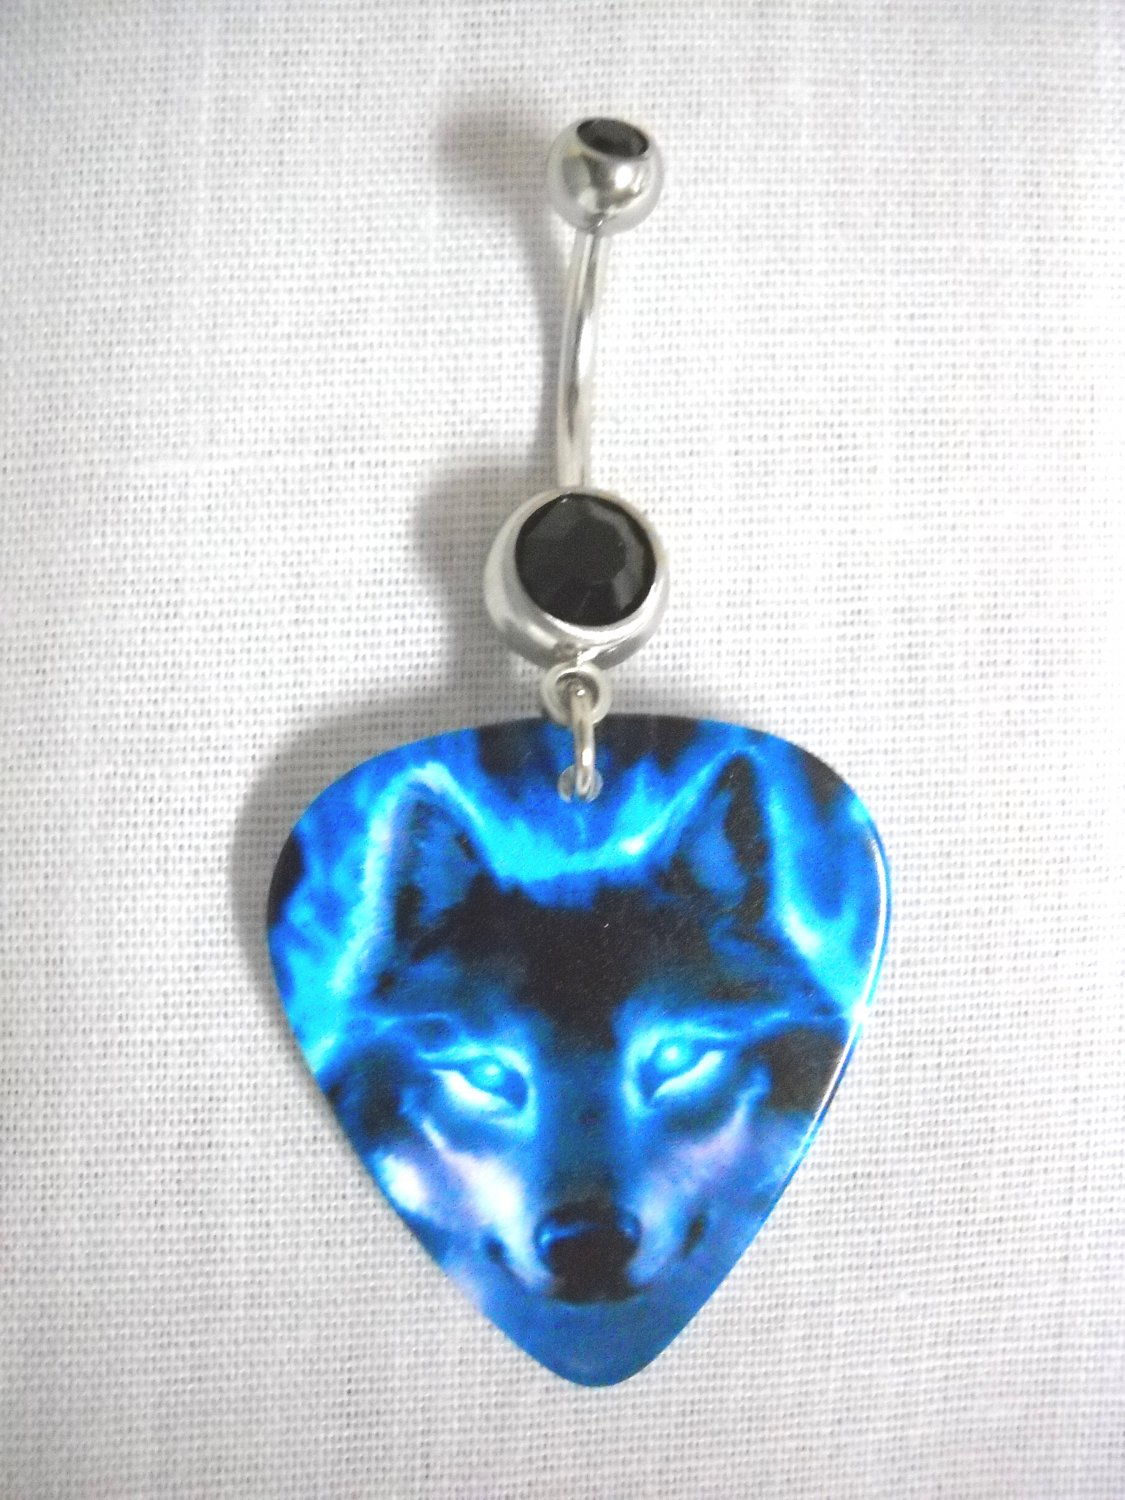 VIVID BLUE FIRE WOLF PACK ANIMAL PRINTED GUITAR PICK ON 14g BLACK CZ BELLY RING